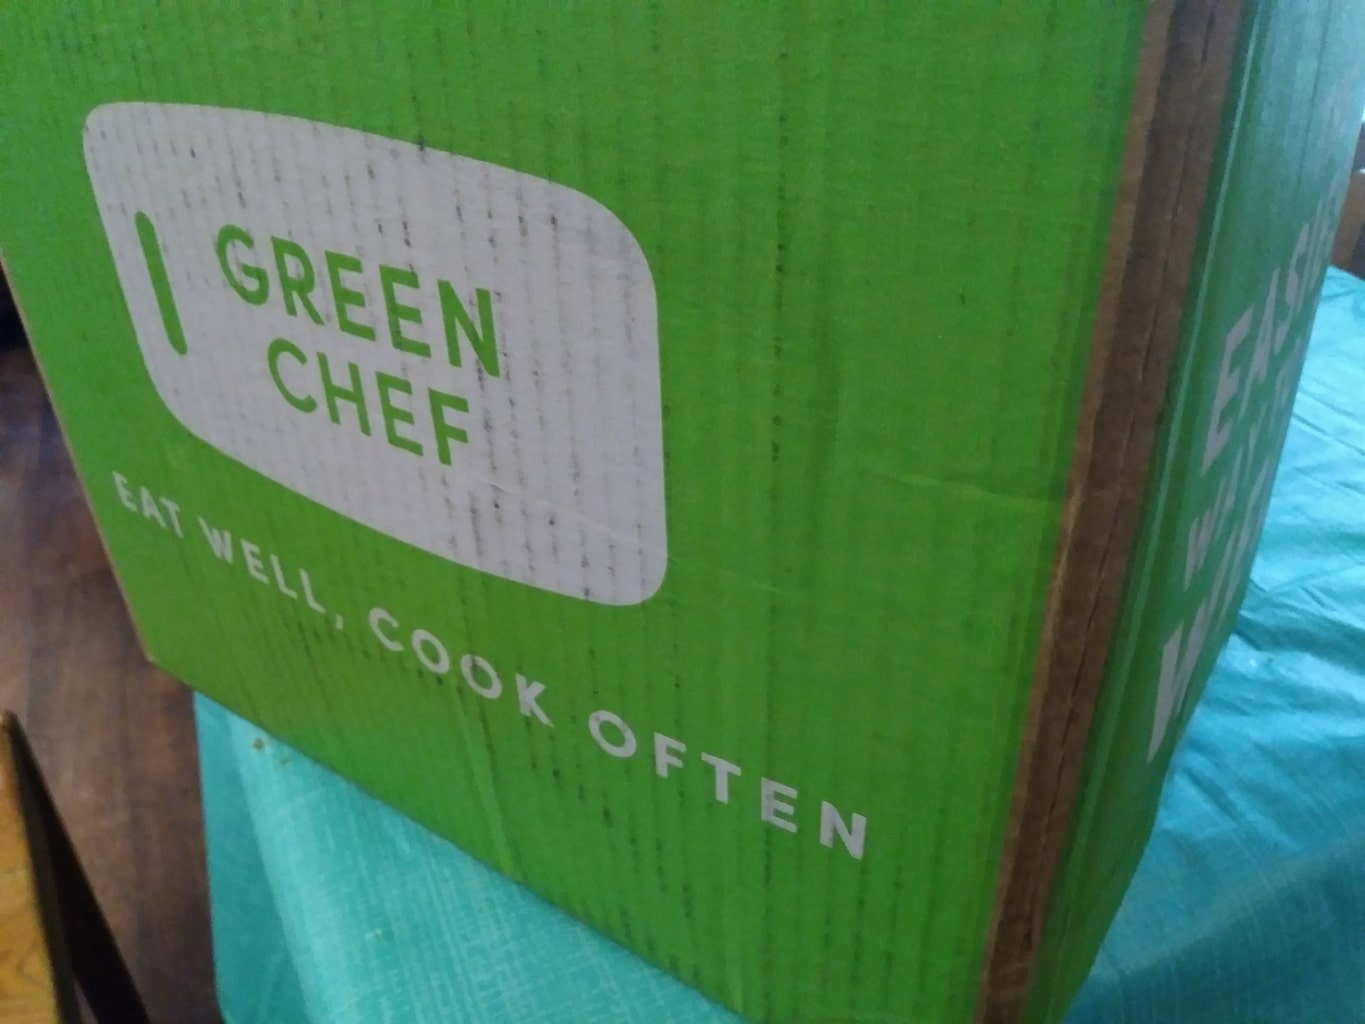 Green Chef meal kit box